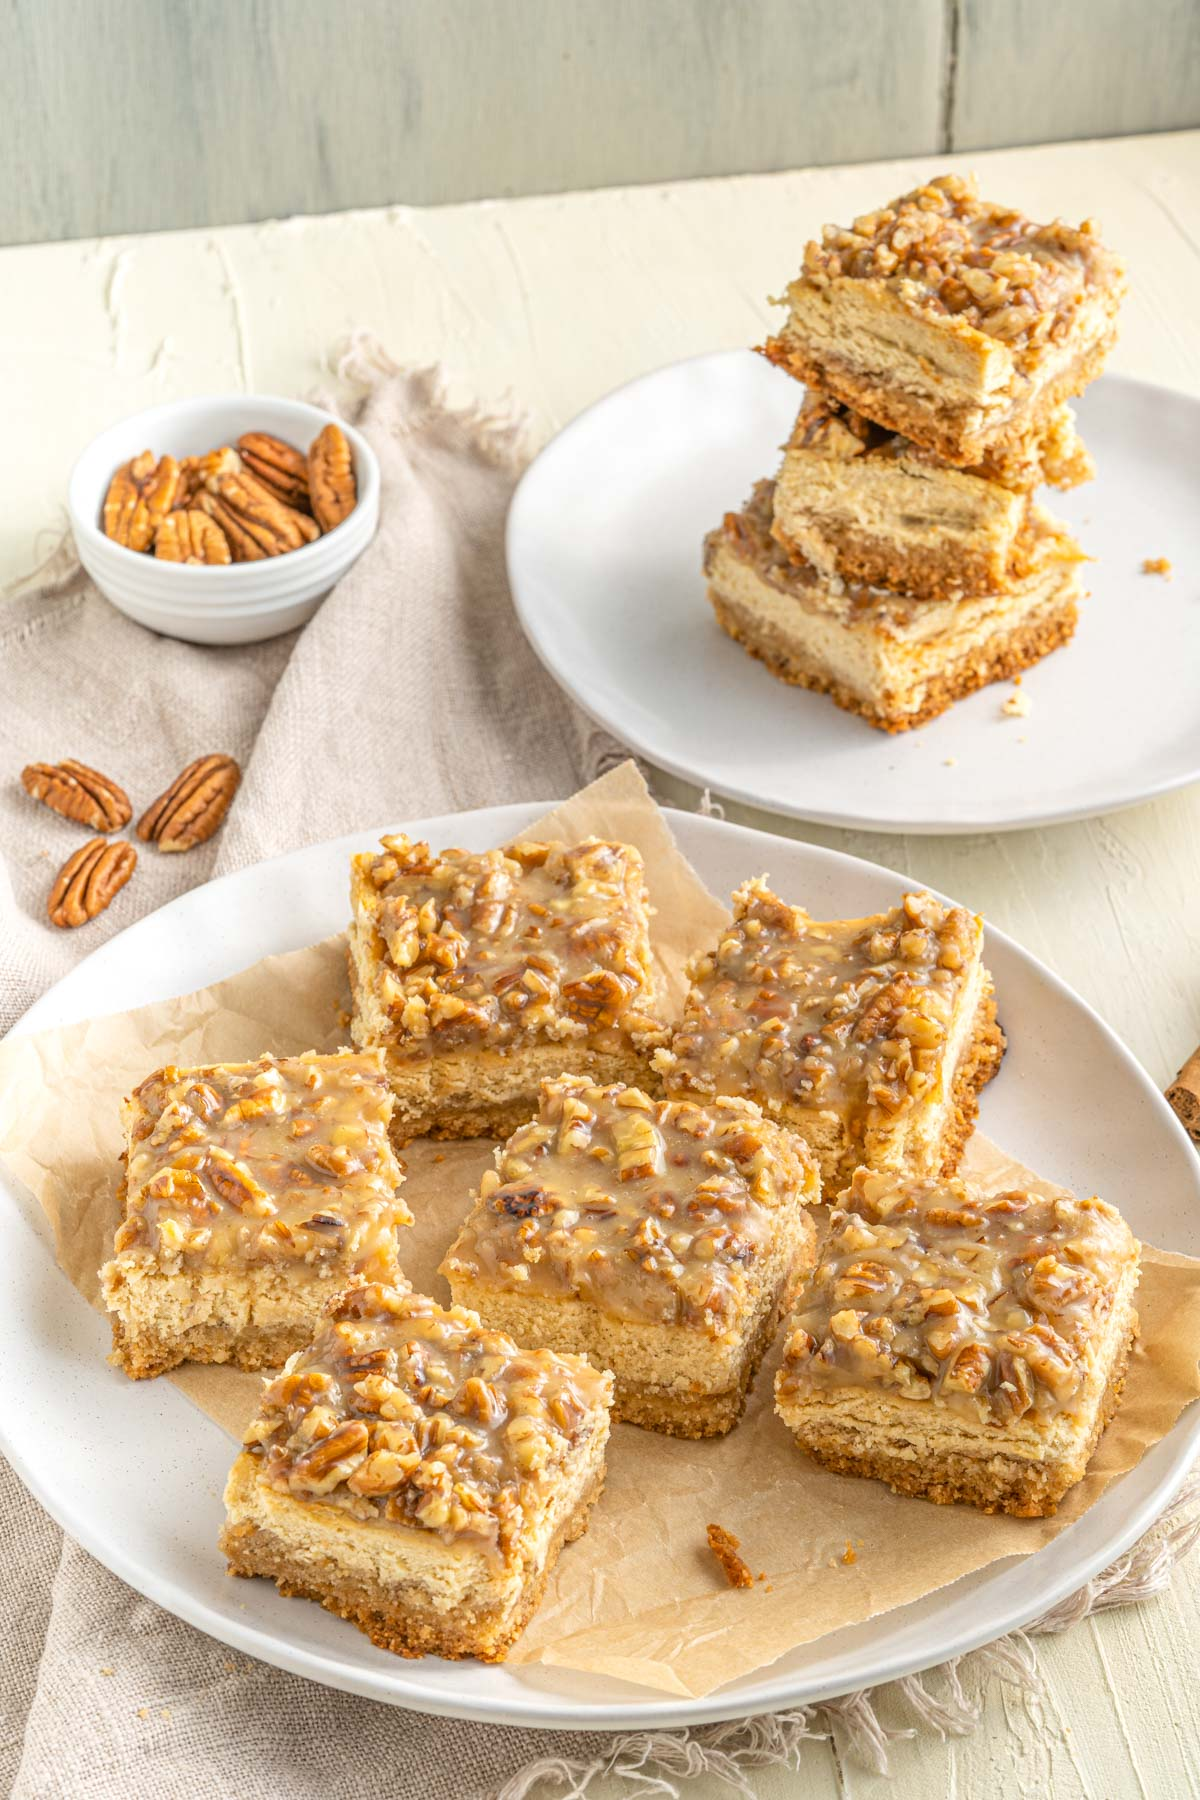 cheesecake bars spread out on a table with pecans